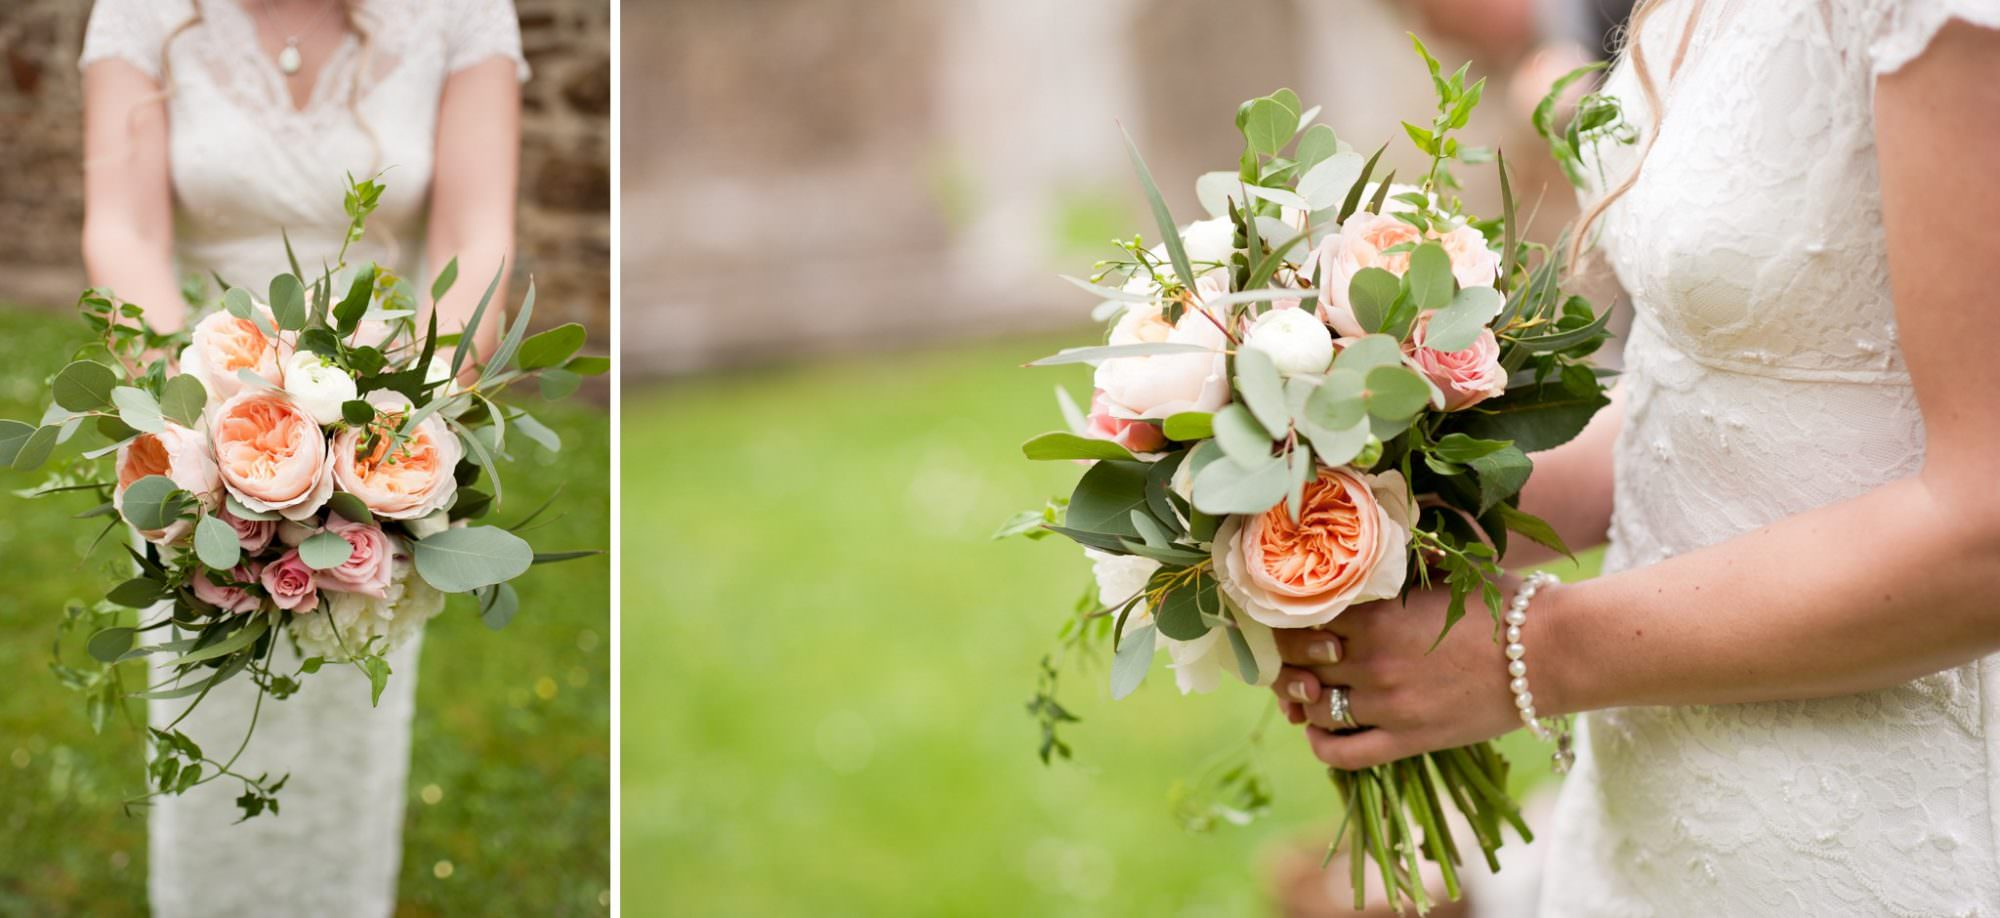 Bridal bouquet at Sopley Church